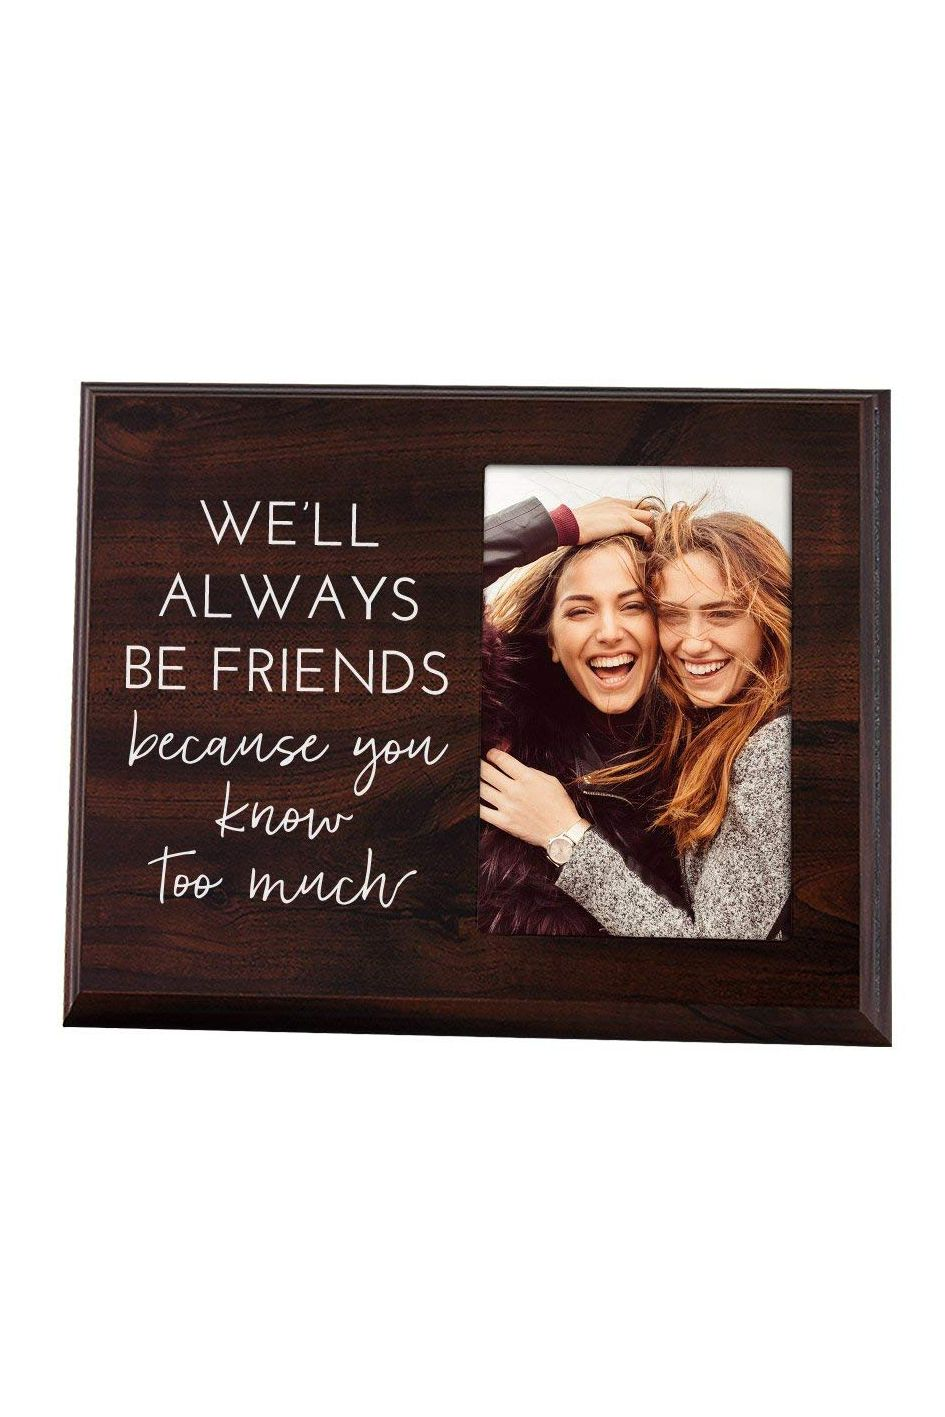 25 Best Friend Christmas Gift Ideas - Cute Friendship Gifts for ...